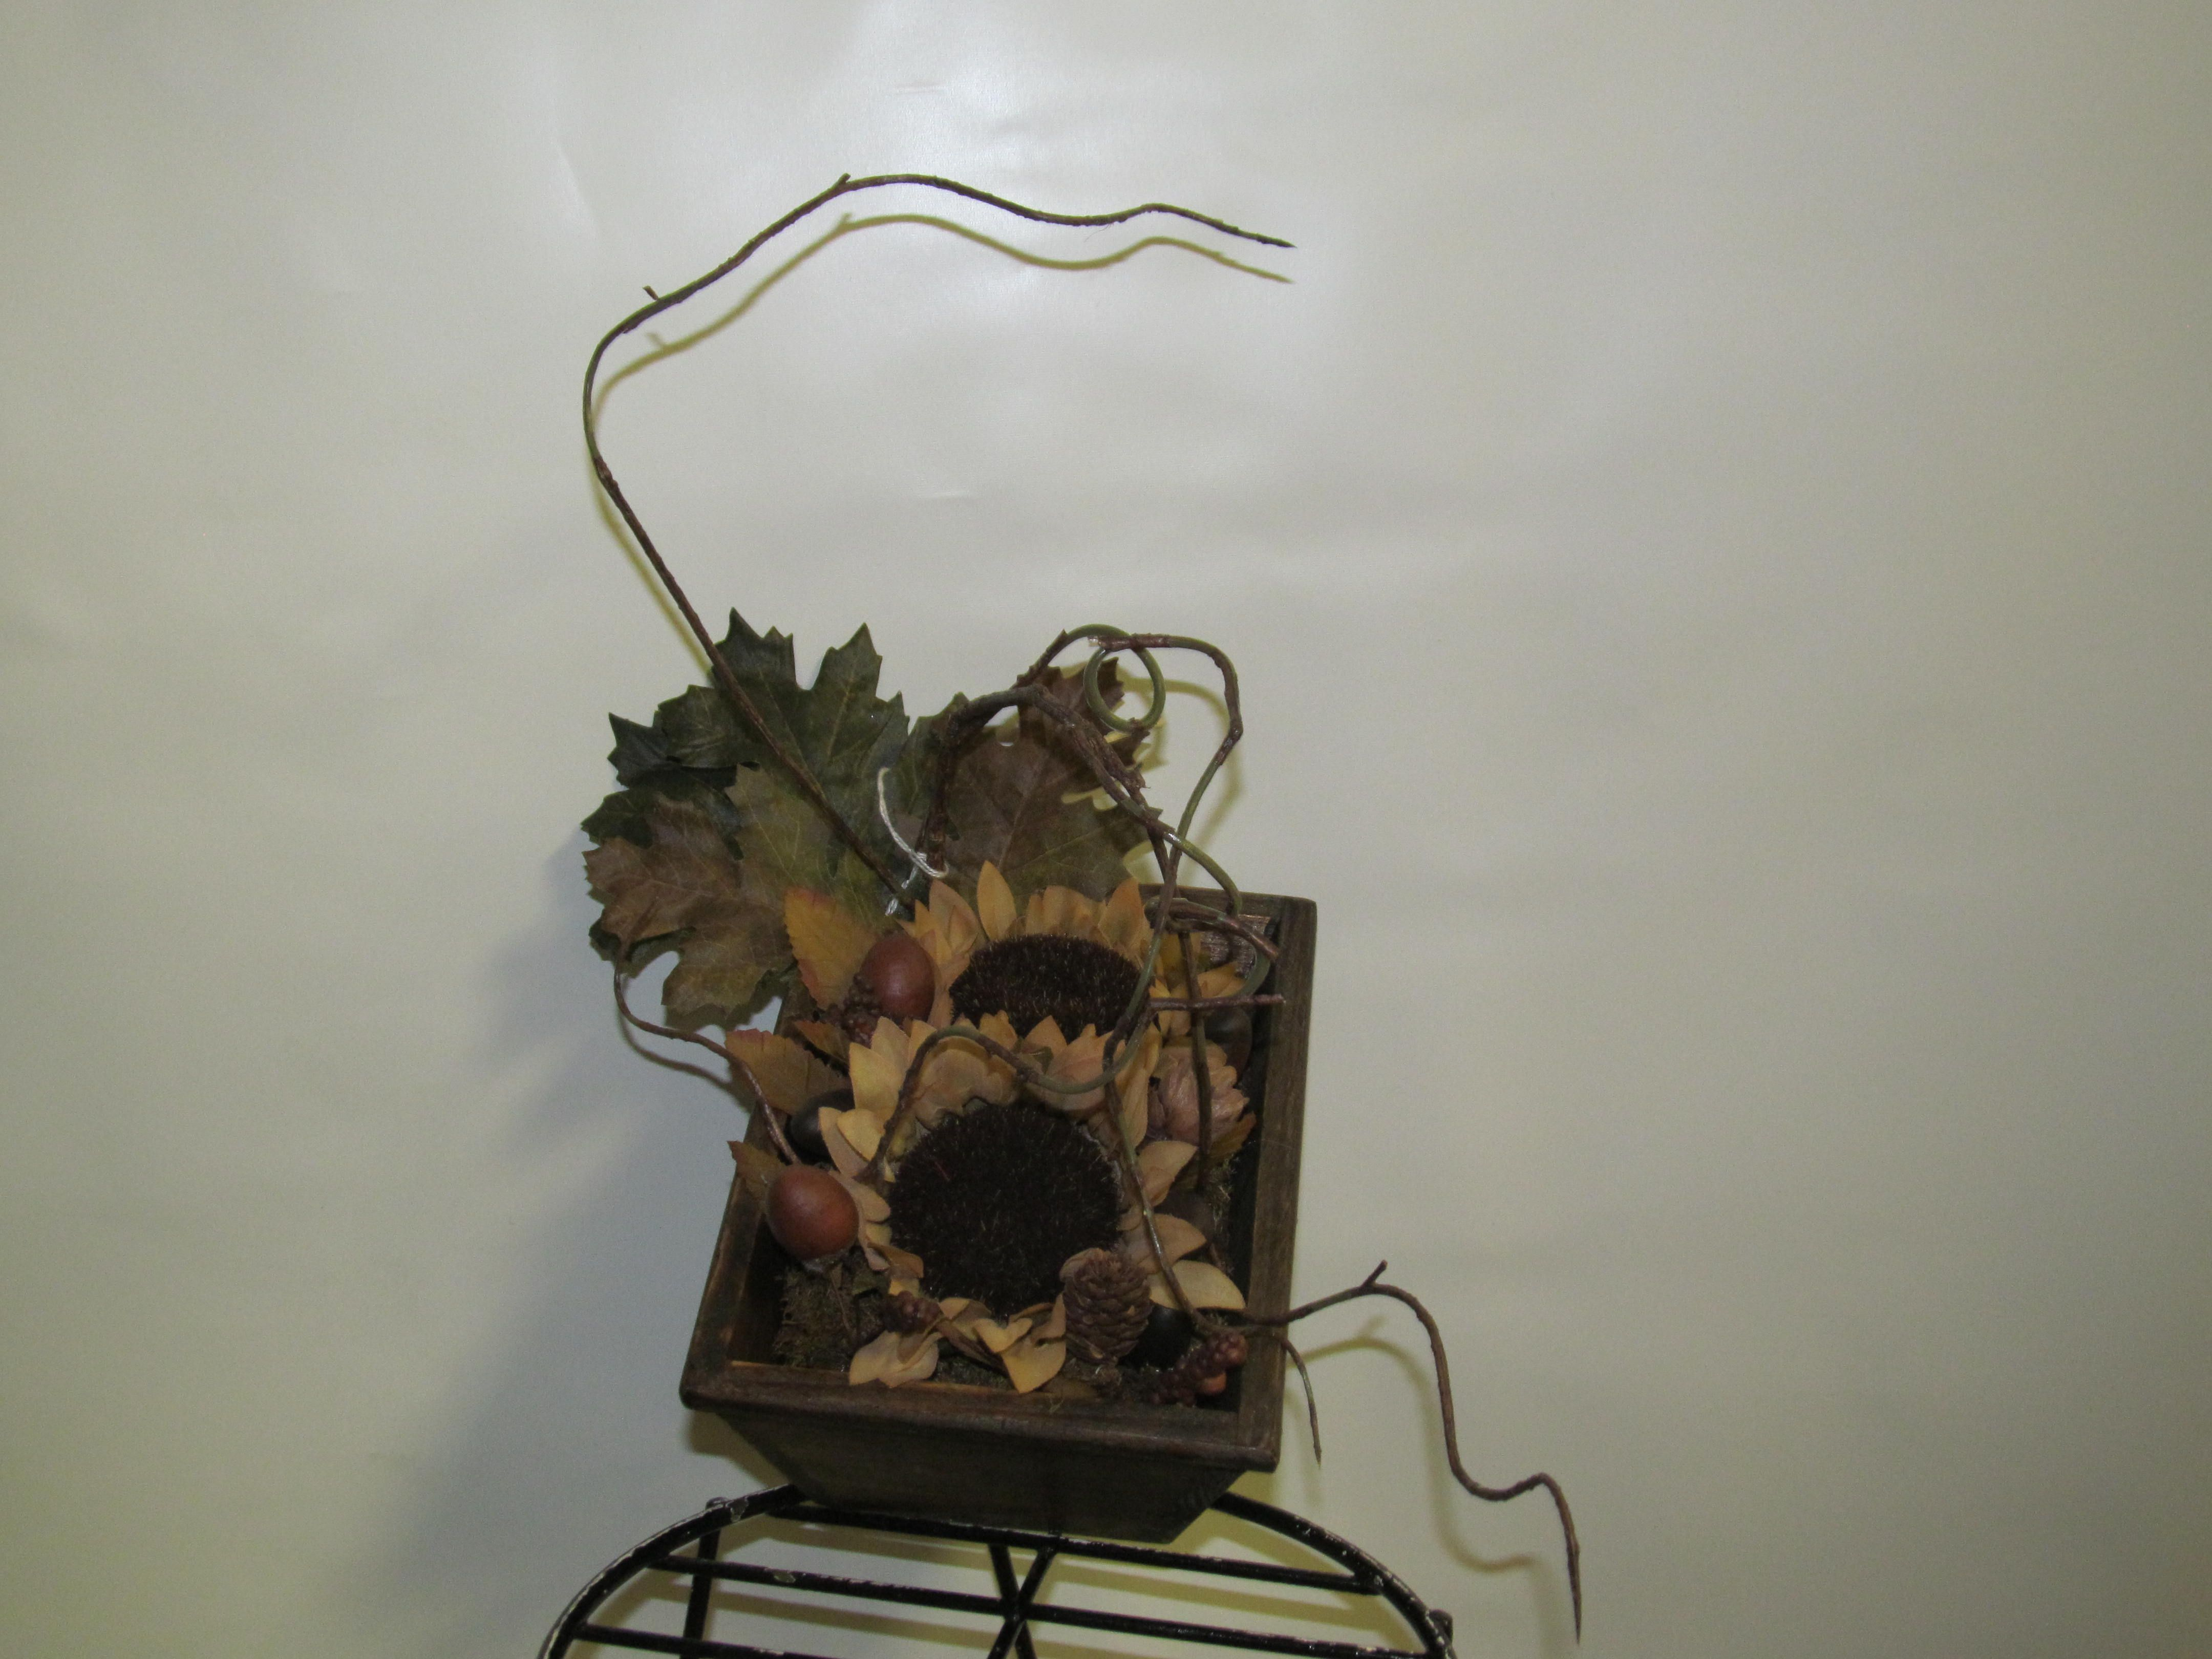 Wooden box with sunflowers and twigs.